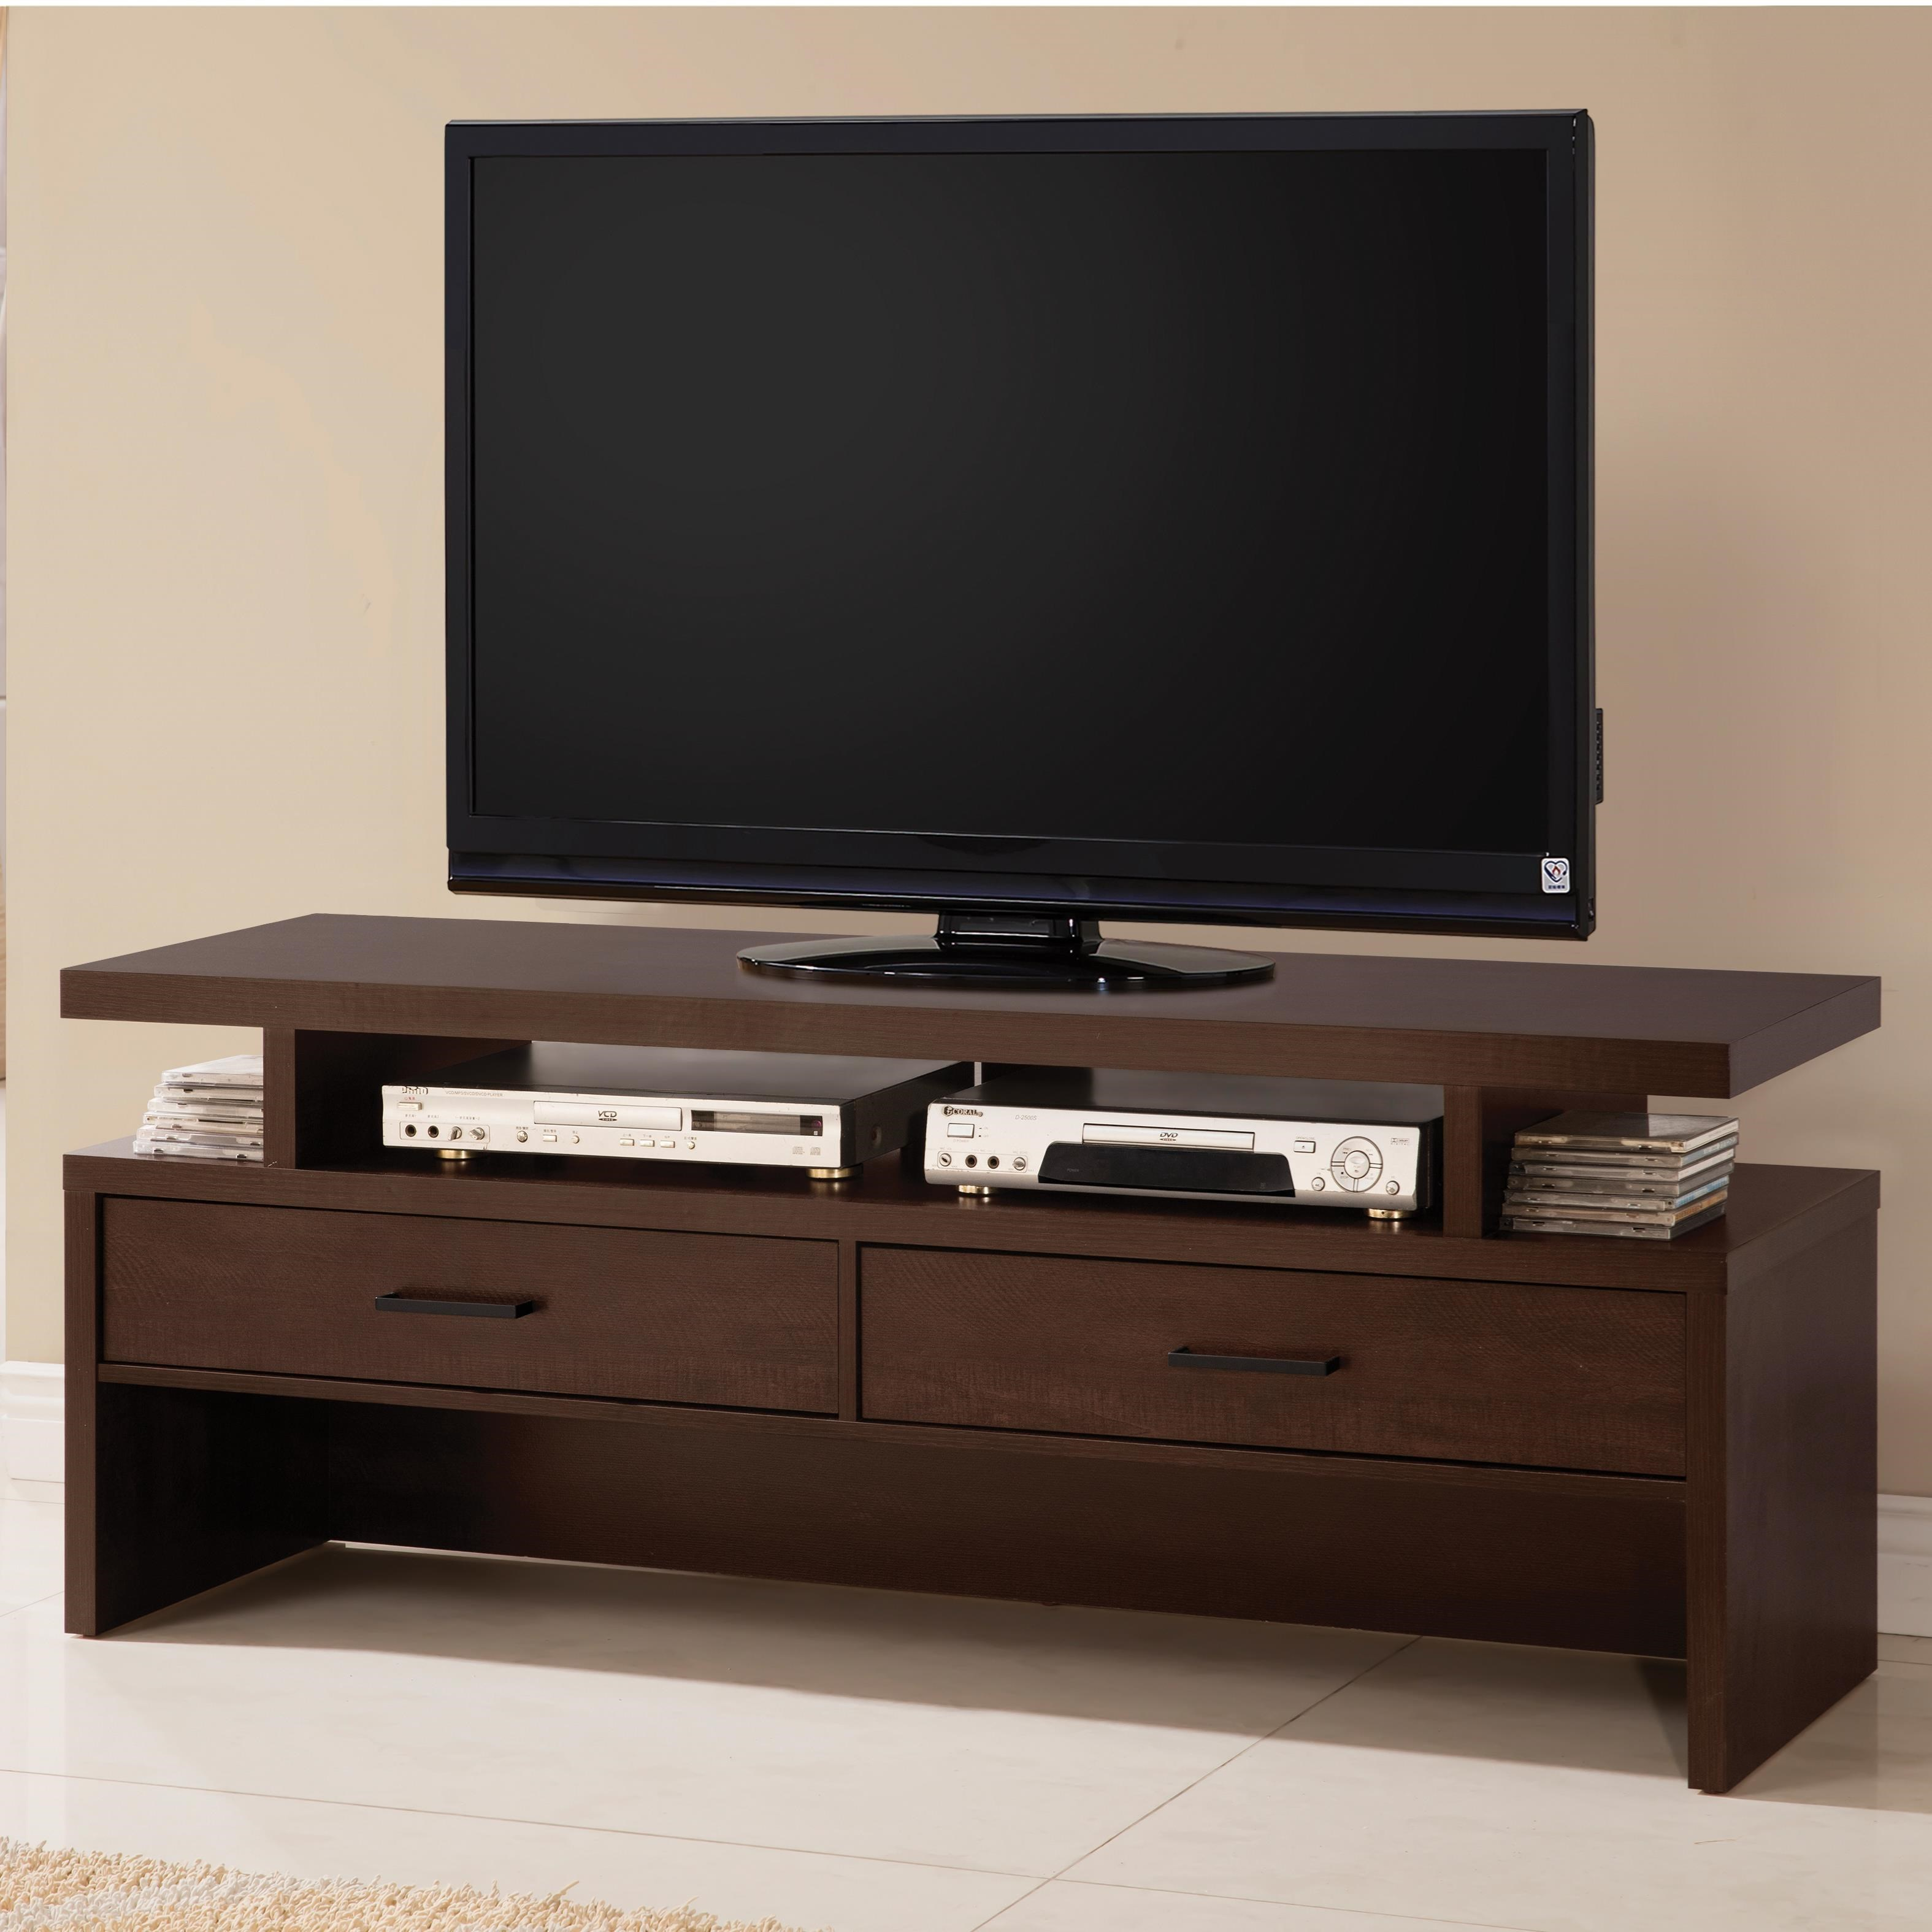 Coaster TV Stands TV Console   Item Number: 720261